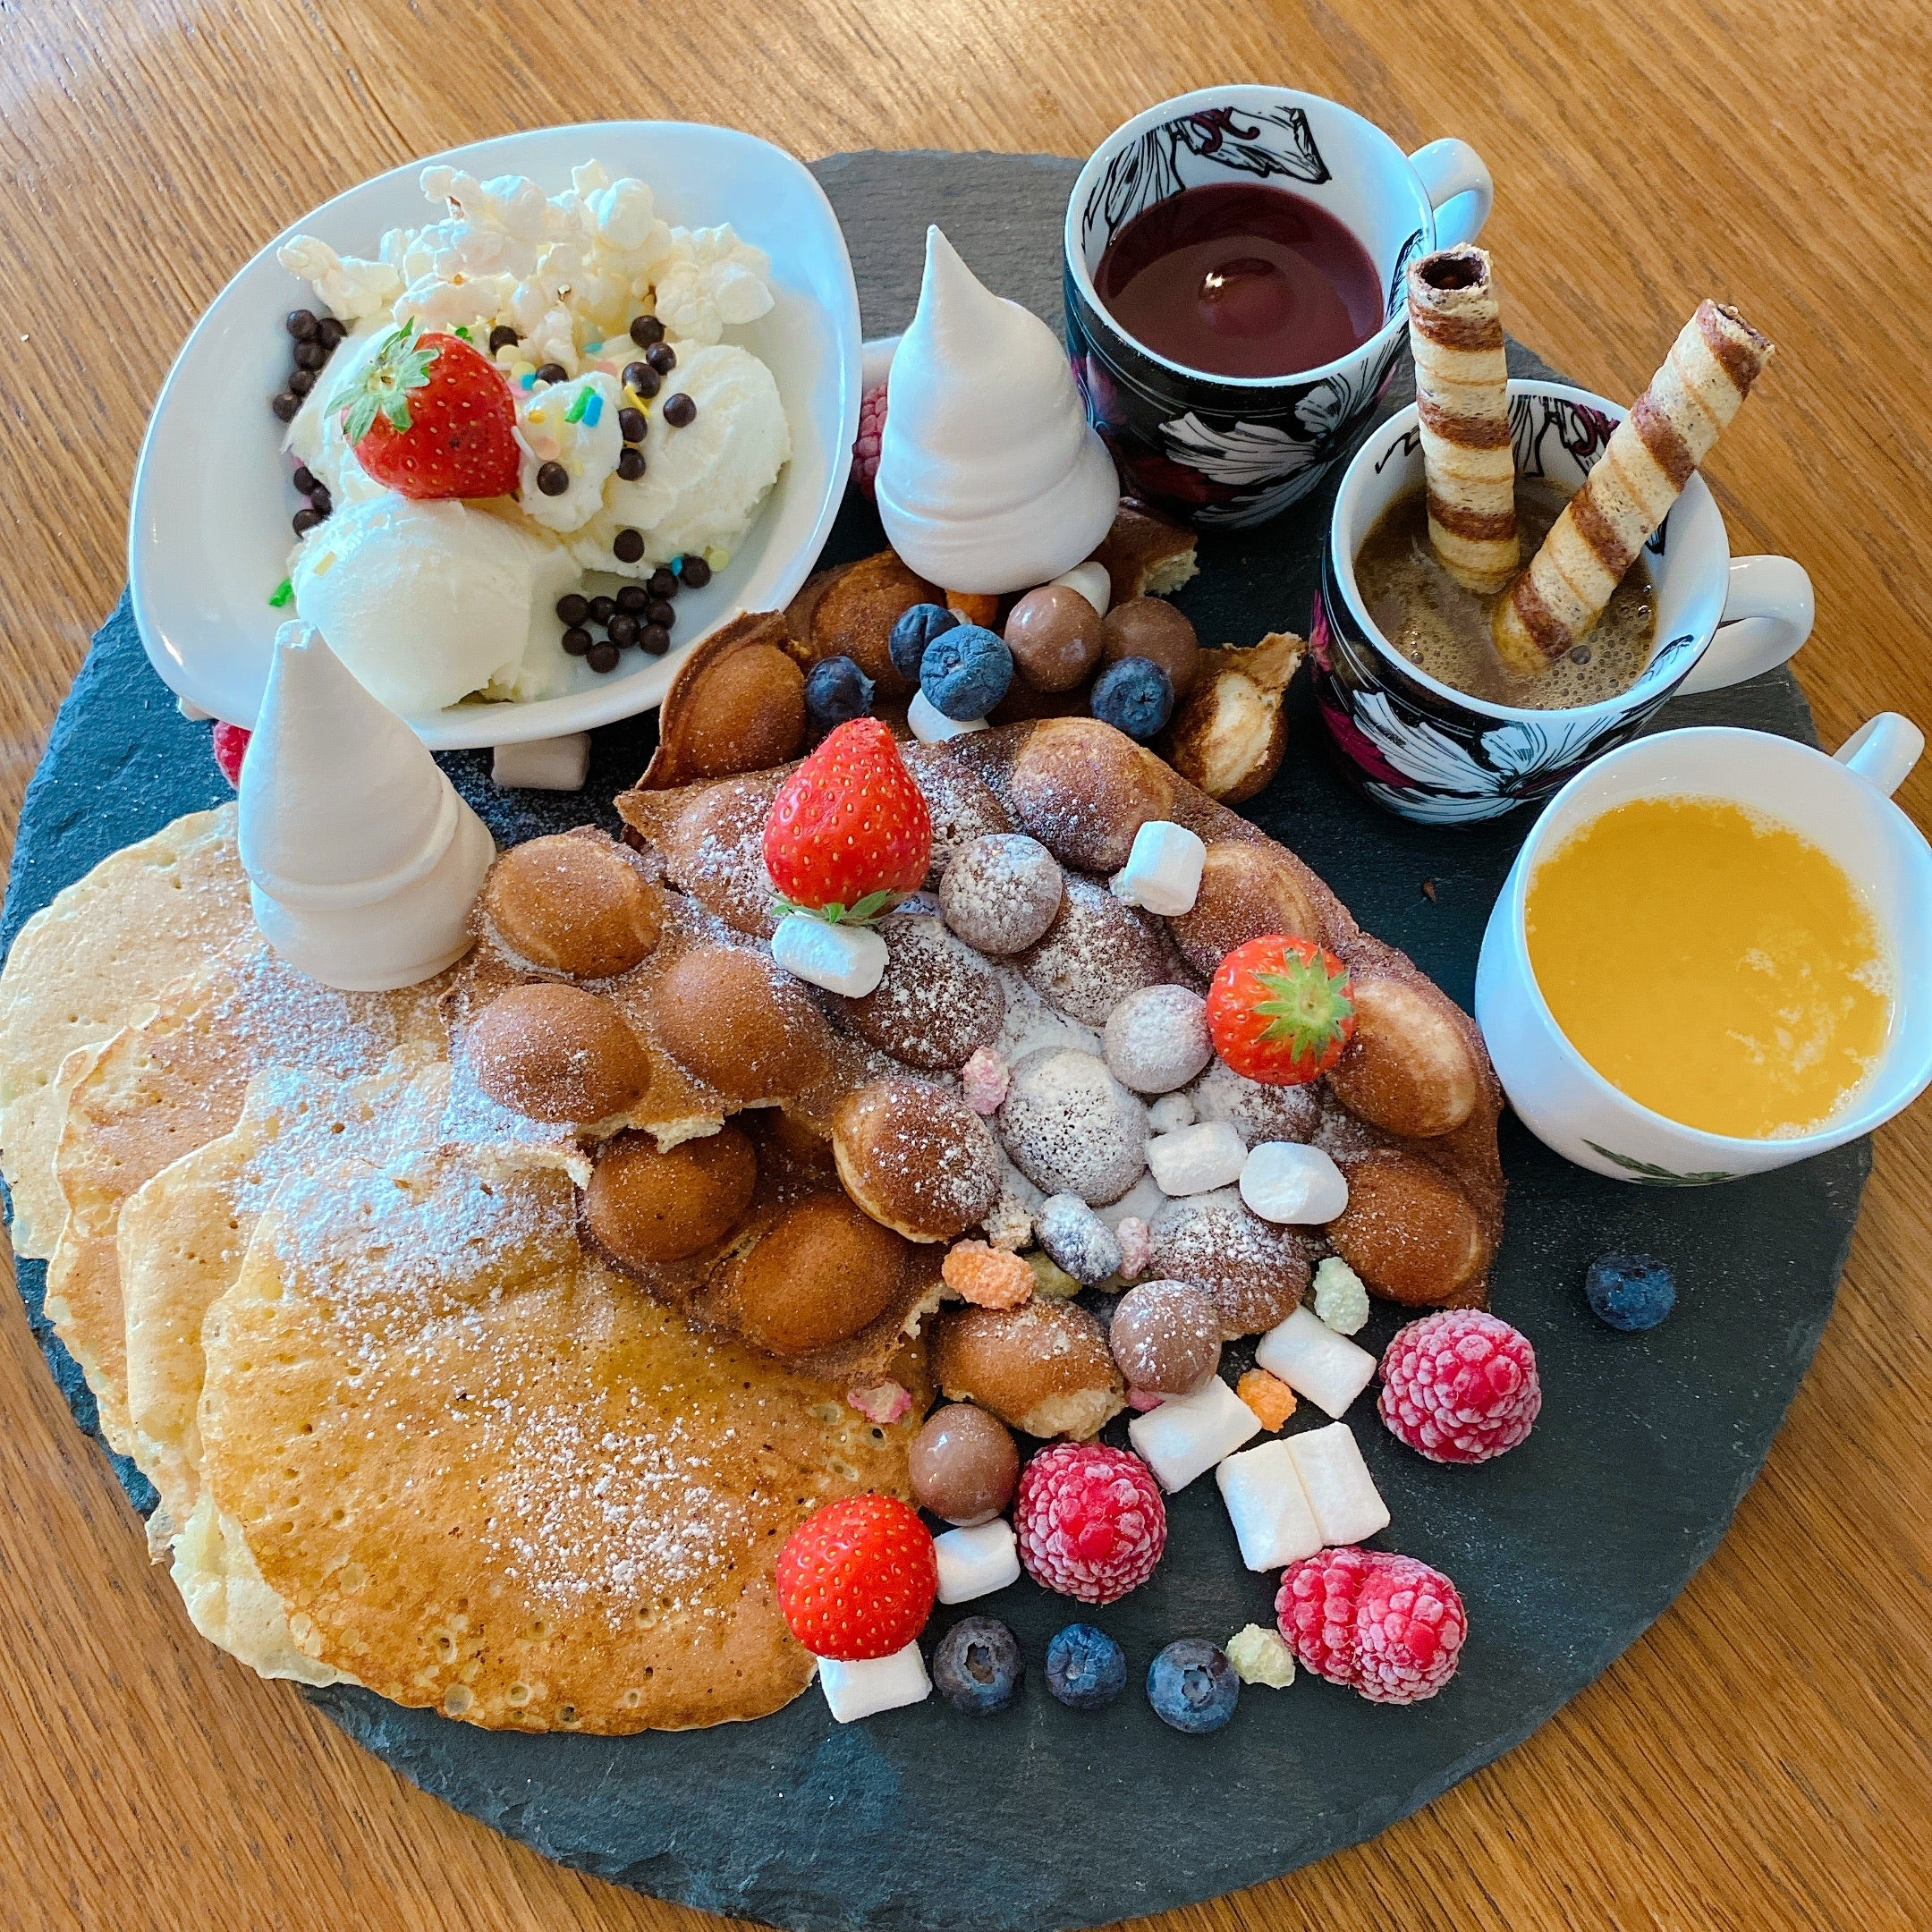 A Pancake and Waffle platter for 2 to takeaway (Wednesday & Saturdays 11-1)